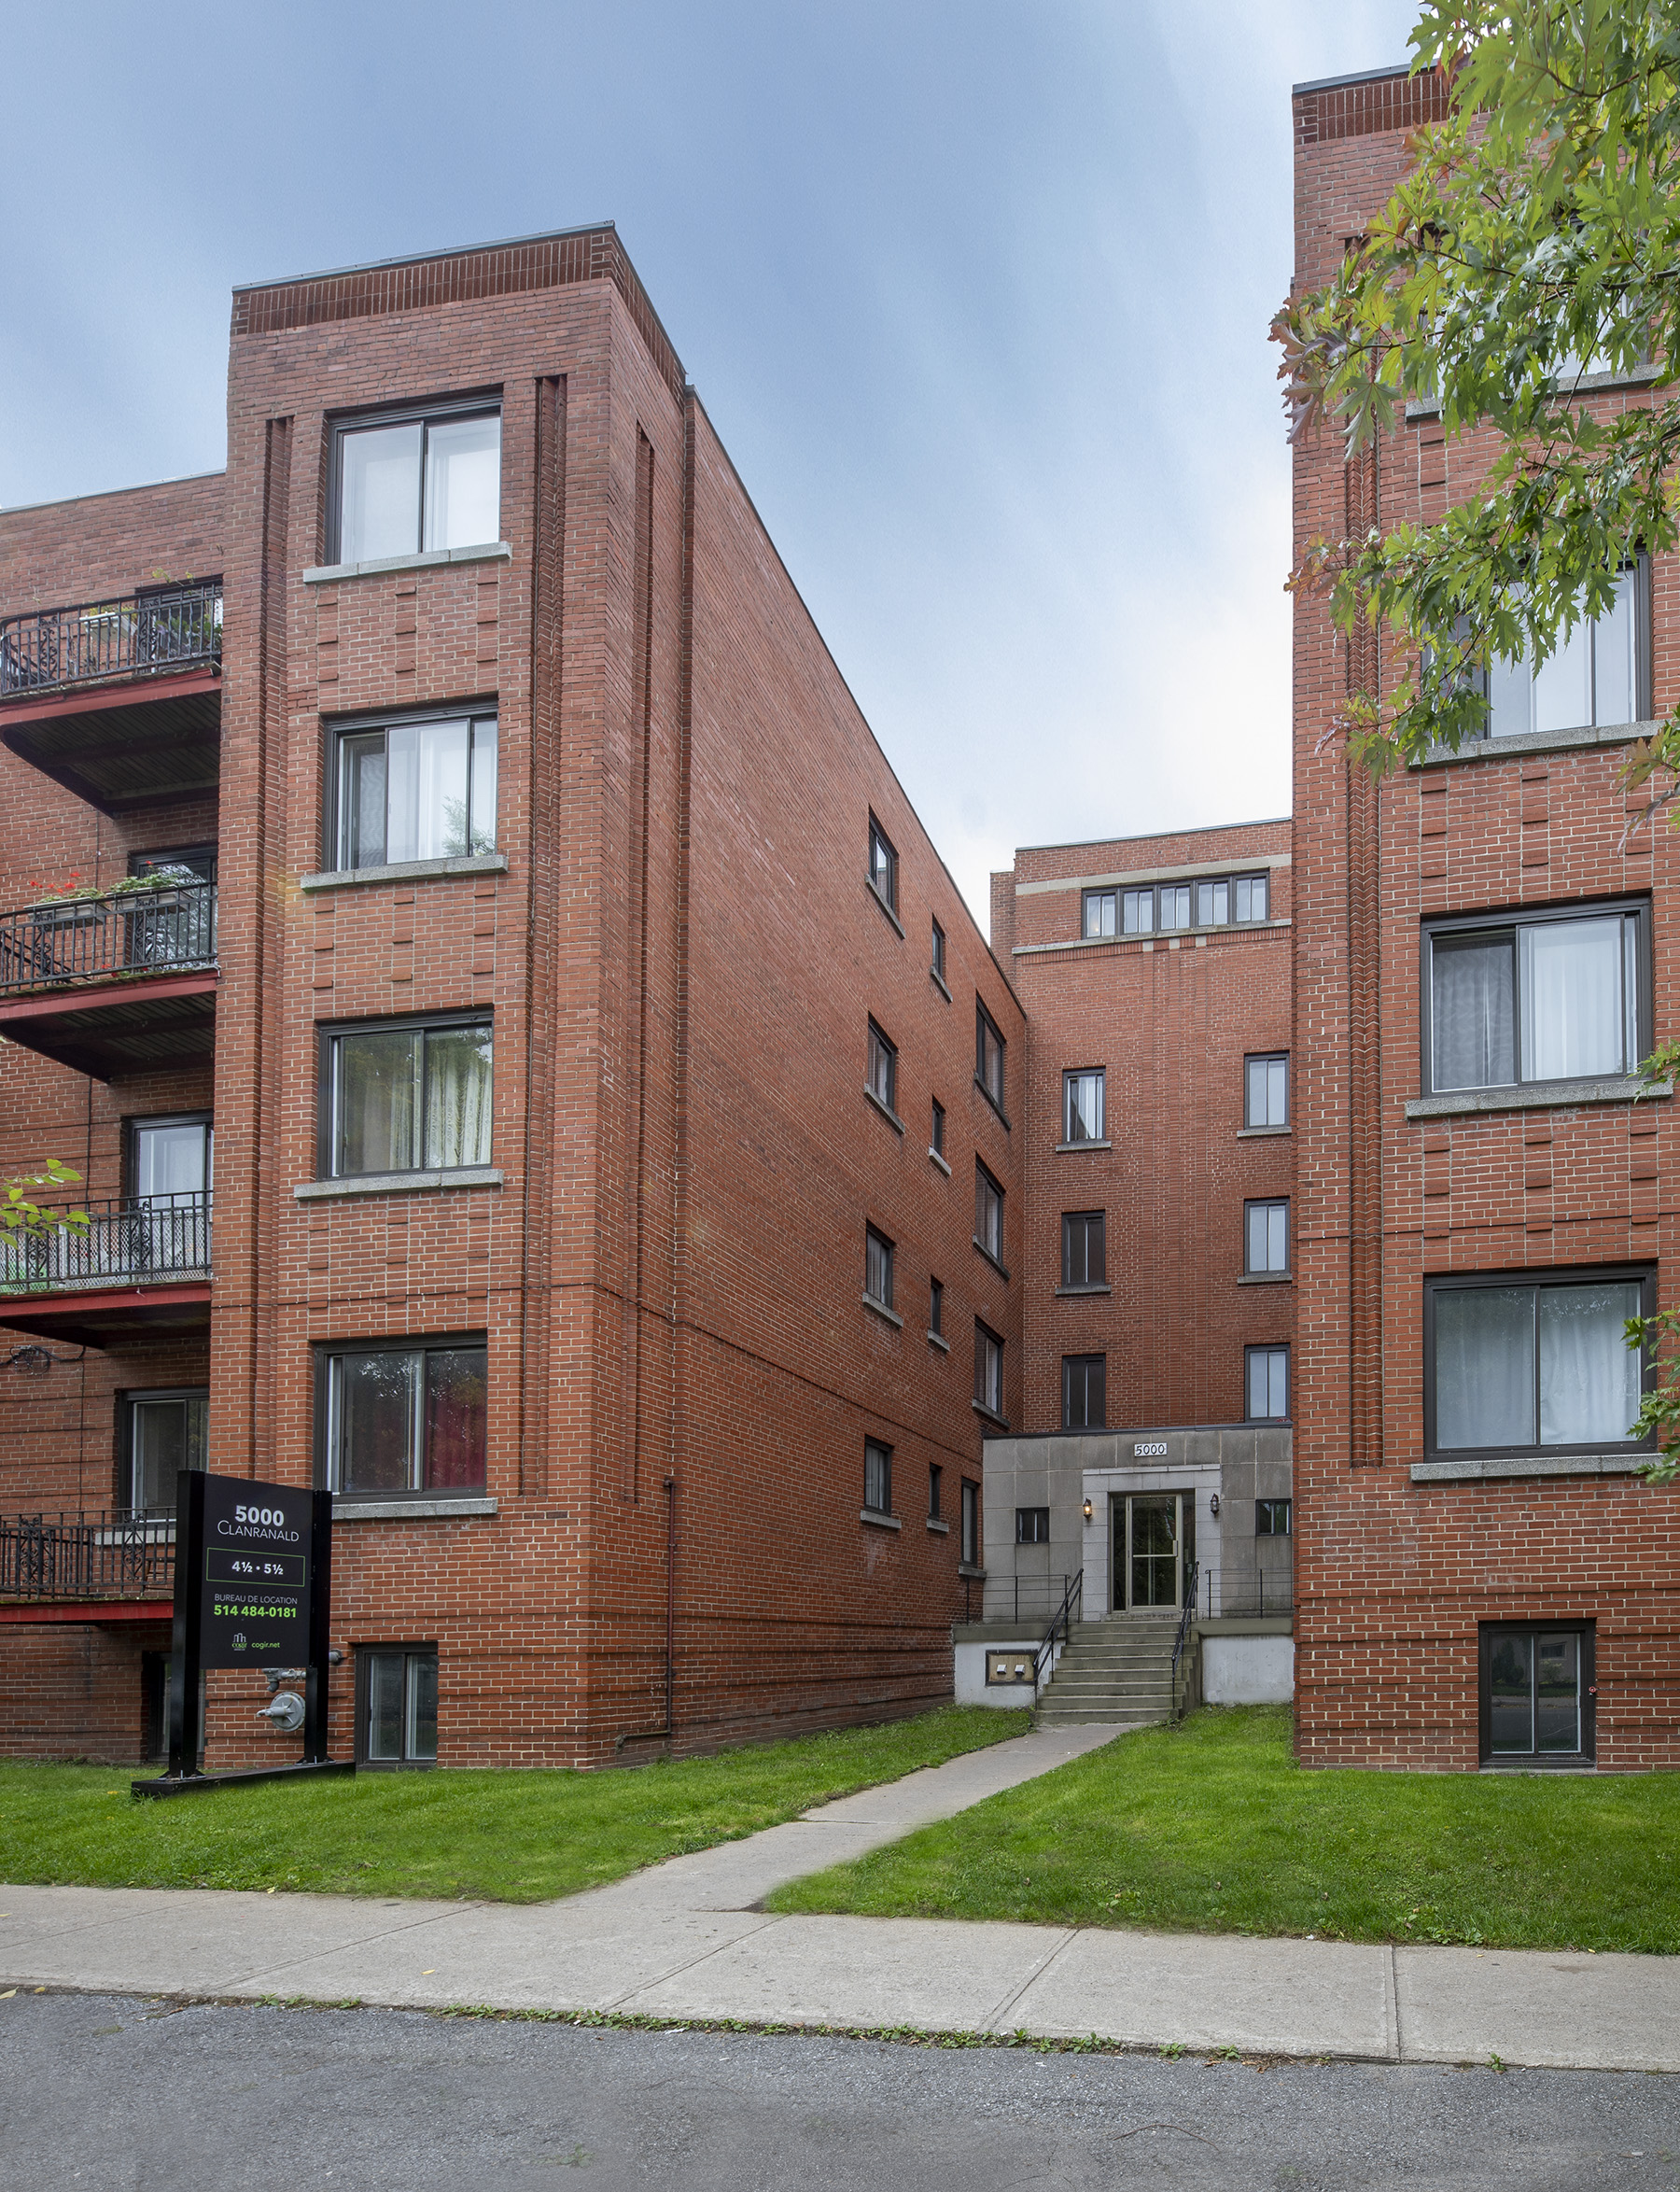 3 bedroom Apartments for rent in Cote-des-Neiges at 5000 Clanranald - Photo 02 - RentQuebecApartments – L401549